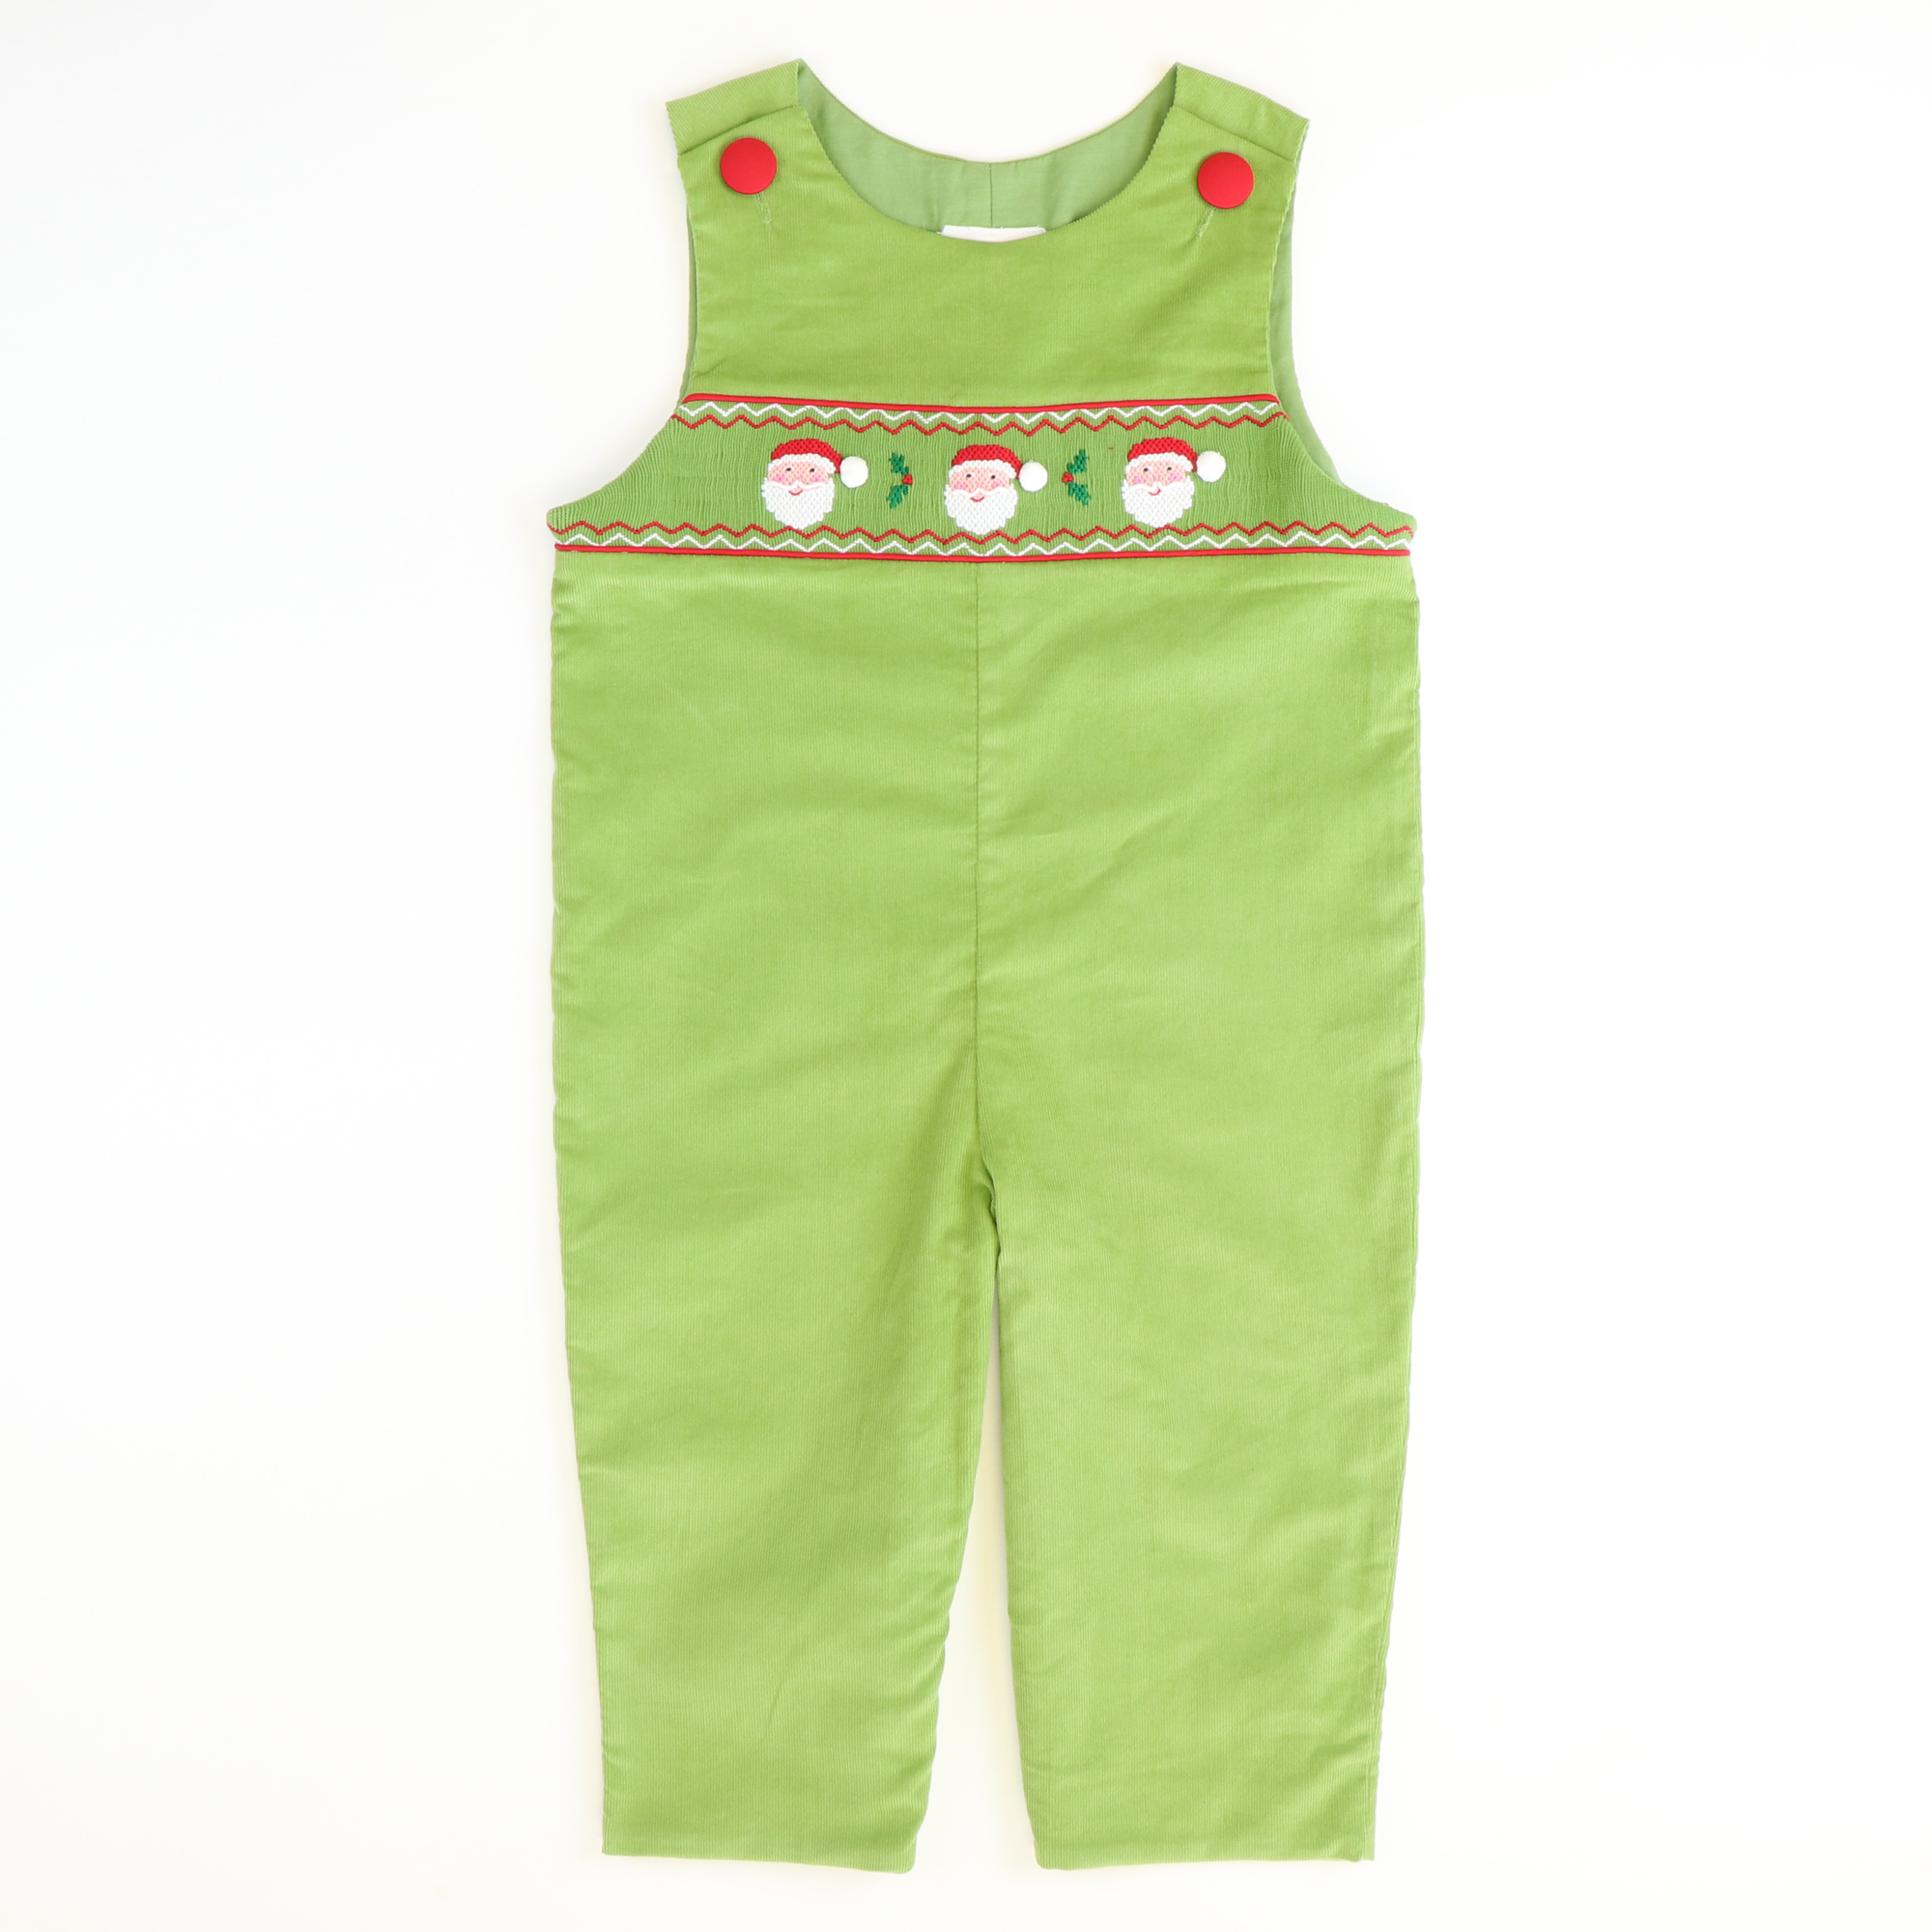 Smocked Holly Jolly Santa Longall - Sage Green Corduroy - Stellybelly ?id=15725346062415